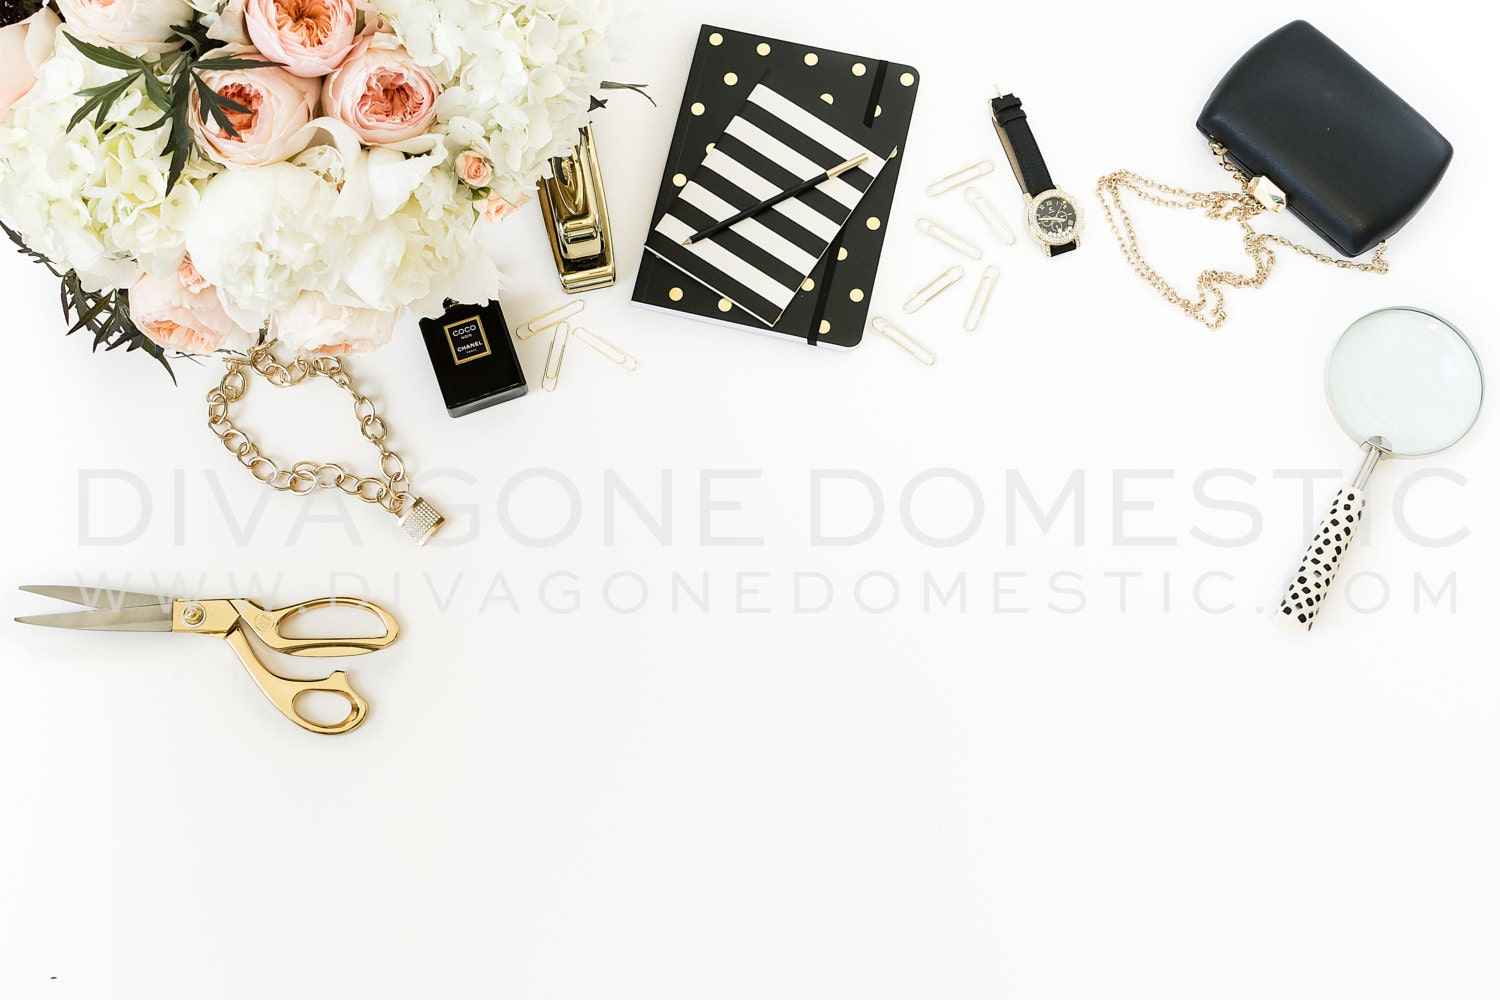 Styled Stock Photo Romantic Blush Pink And Gold Styled Desk